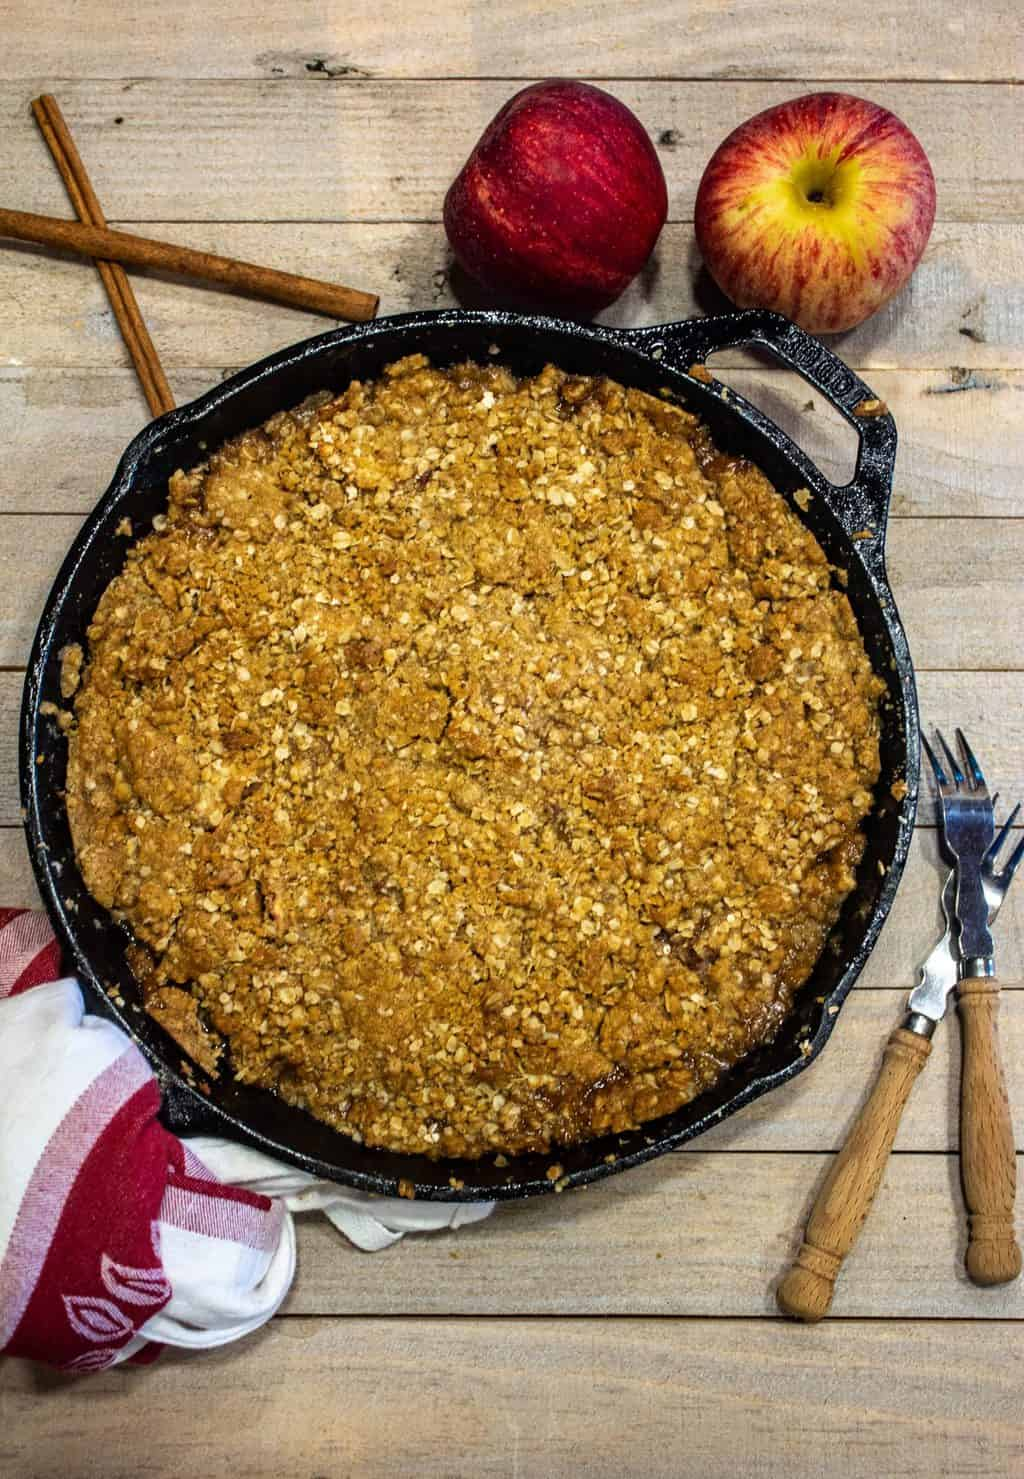 Skillet Apple Crisp is an old fashioned apple dessert made with orchard fresh apples and topped with an oatmeal and brown sugar crumble.